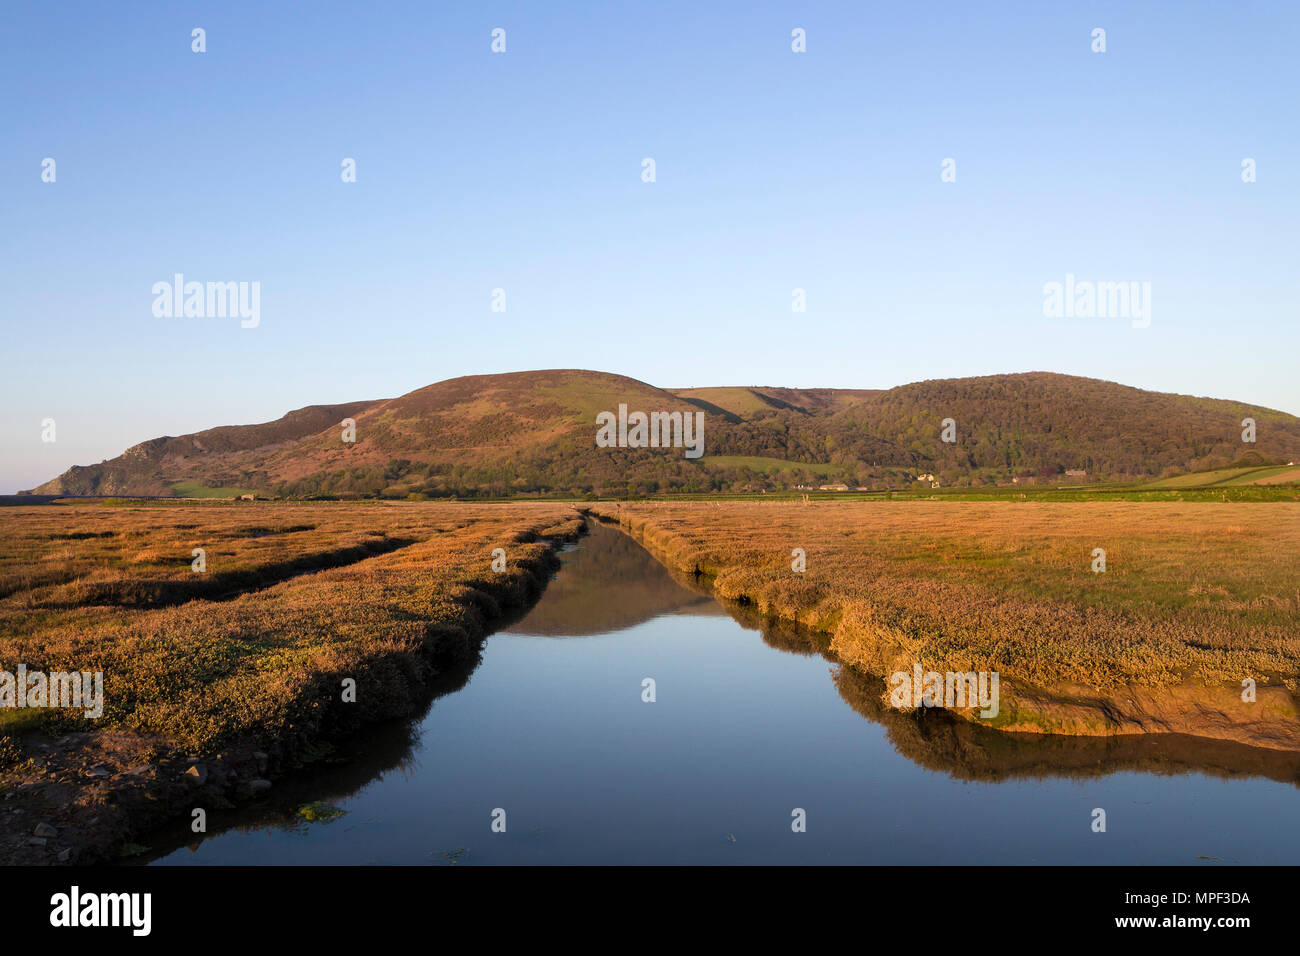 Bossington Hill Viewed From Porlock Marsh on the South West Coast Path, Exmoor National Park, Porlock, Somerset, UK Stock Photo